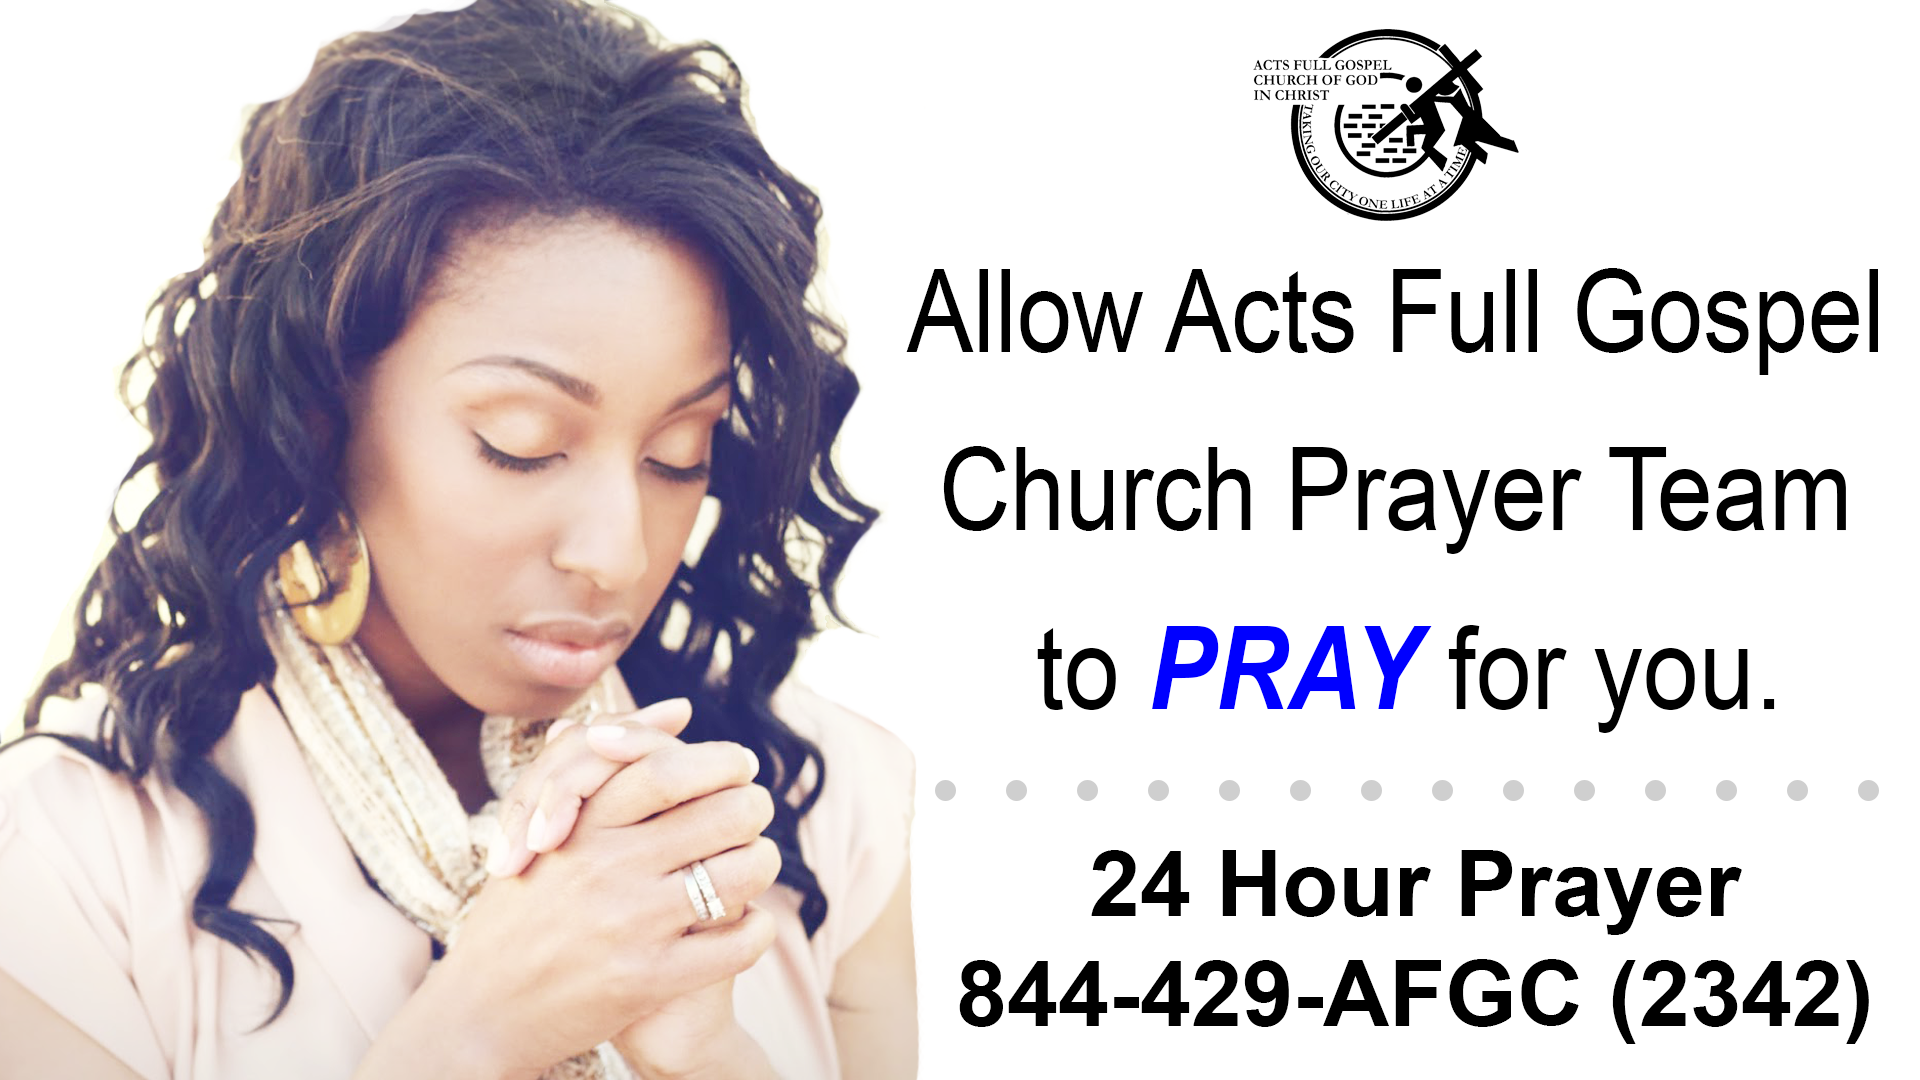 24 Hr Prayer Hotline